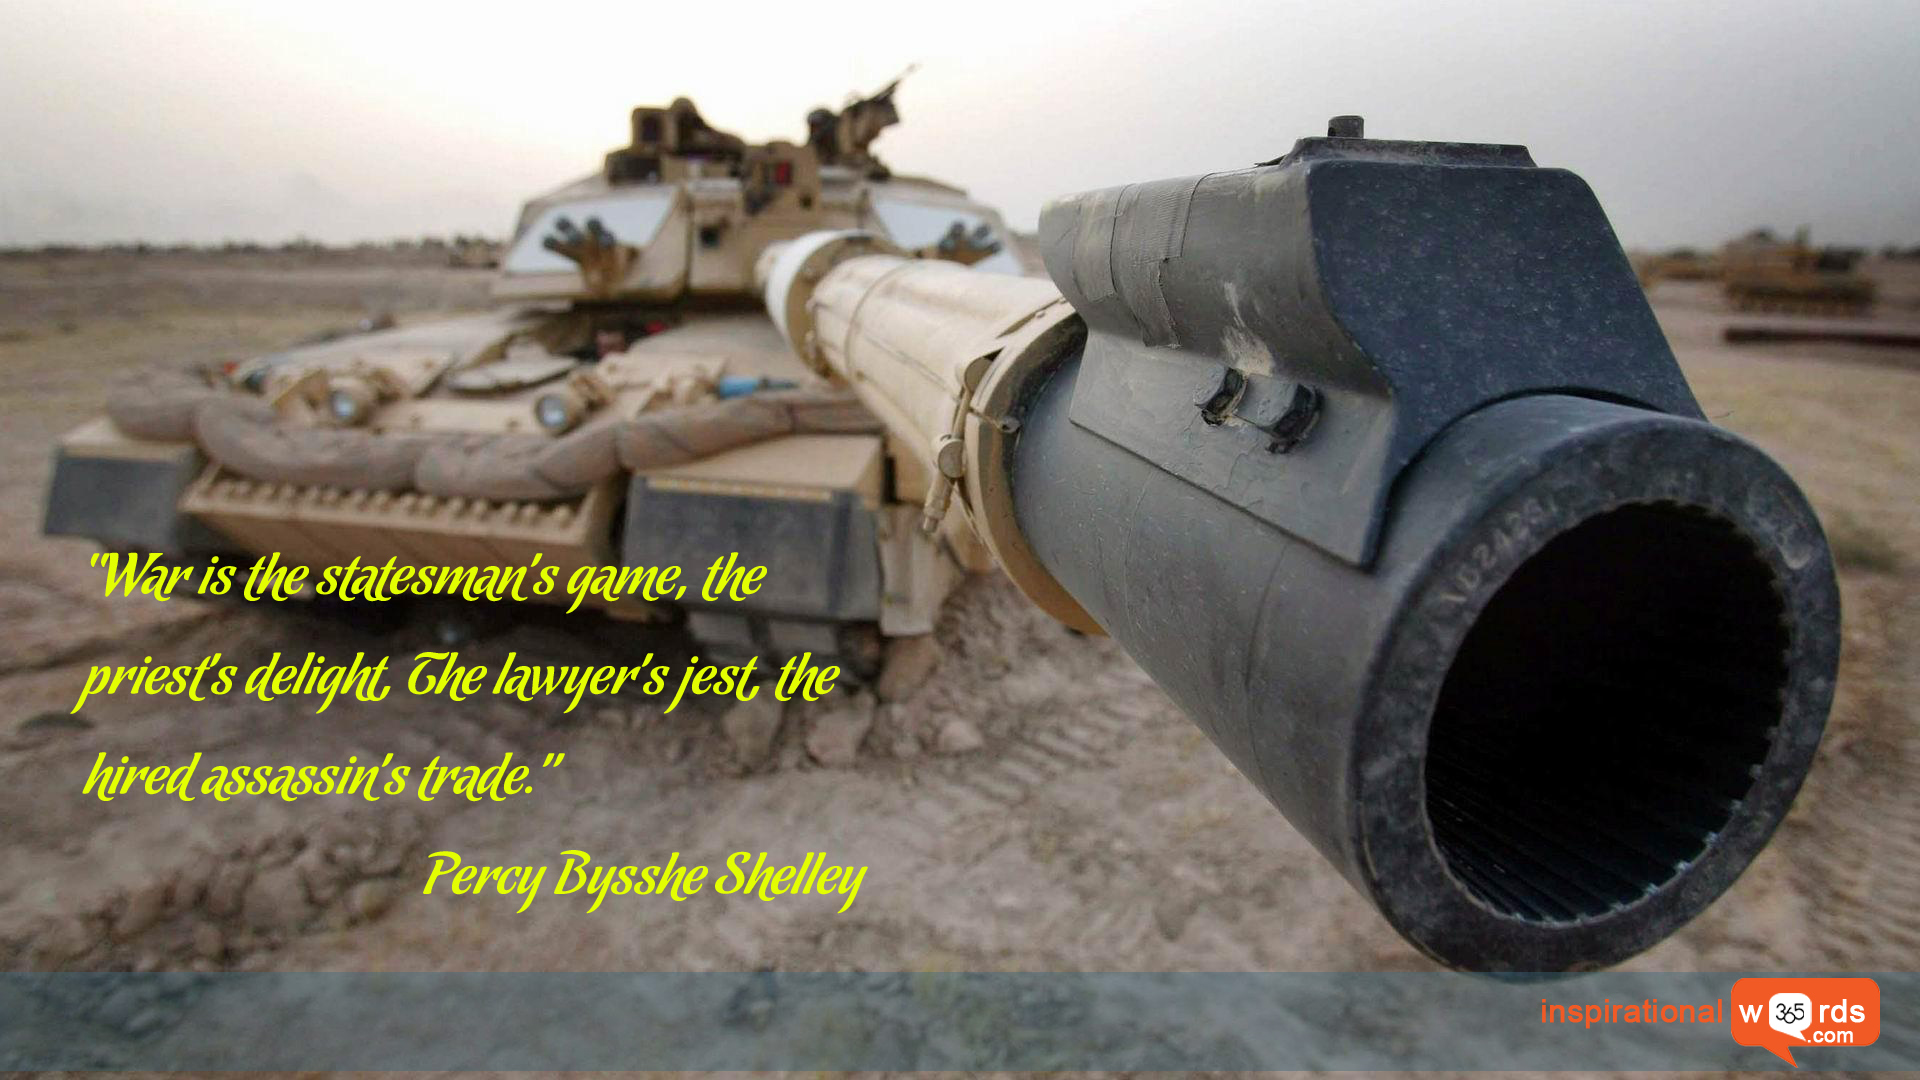 Inspirational Wallpaper Quote by Percy Bysshe Shelley